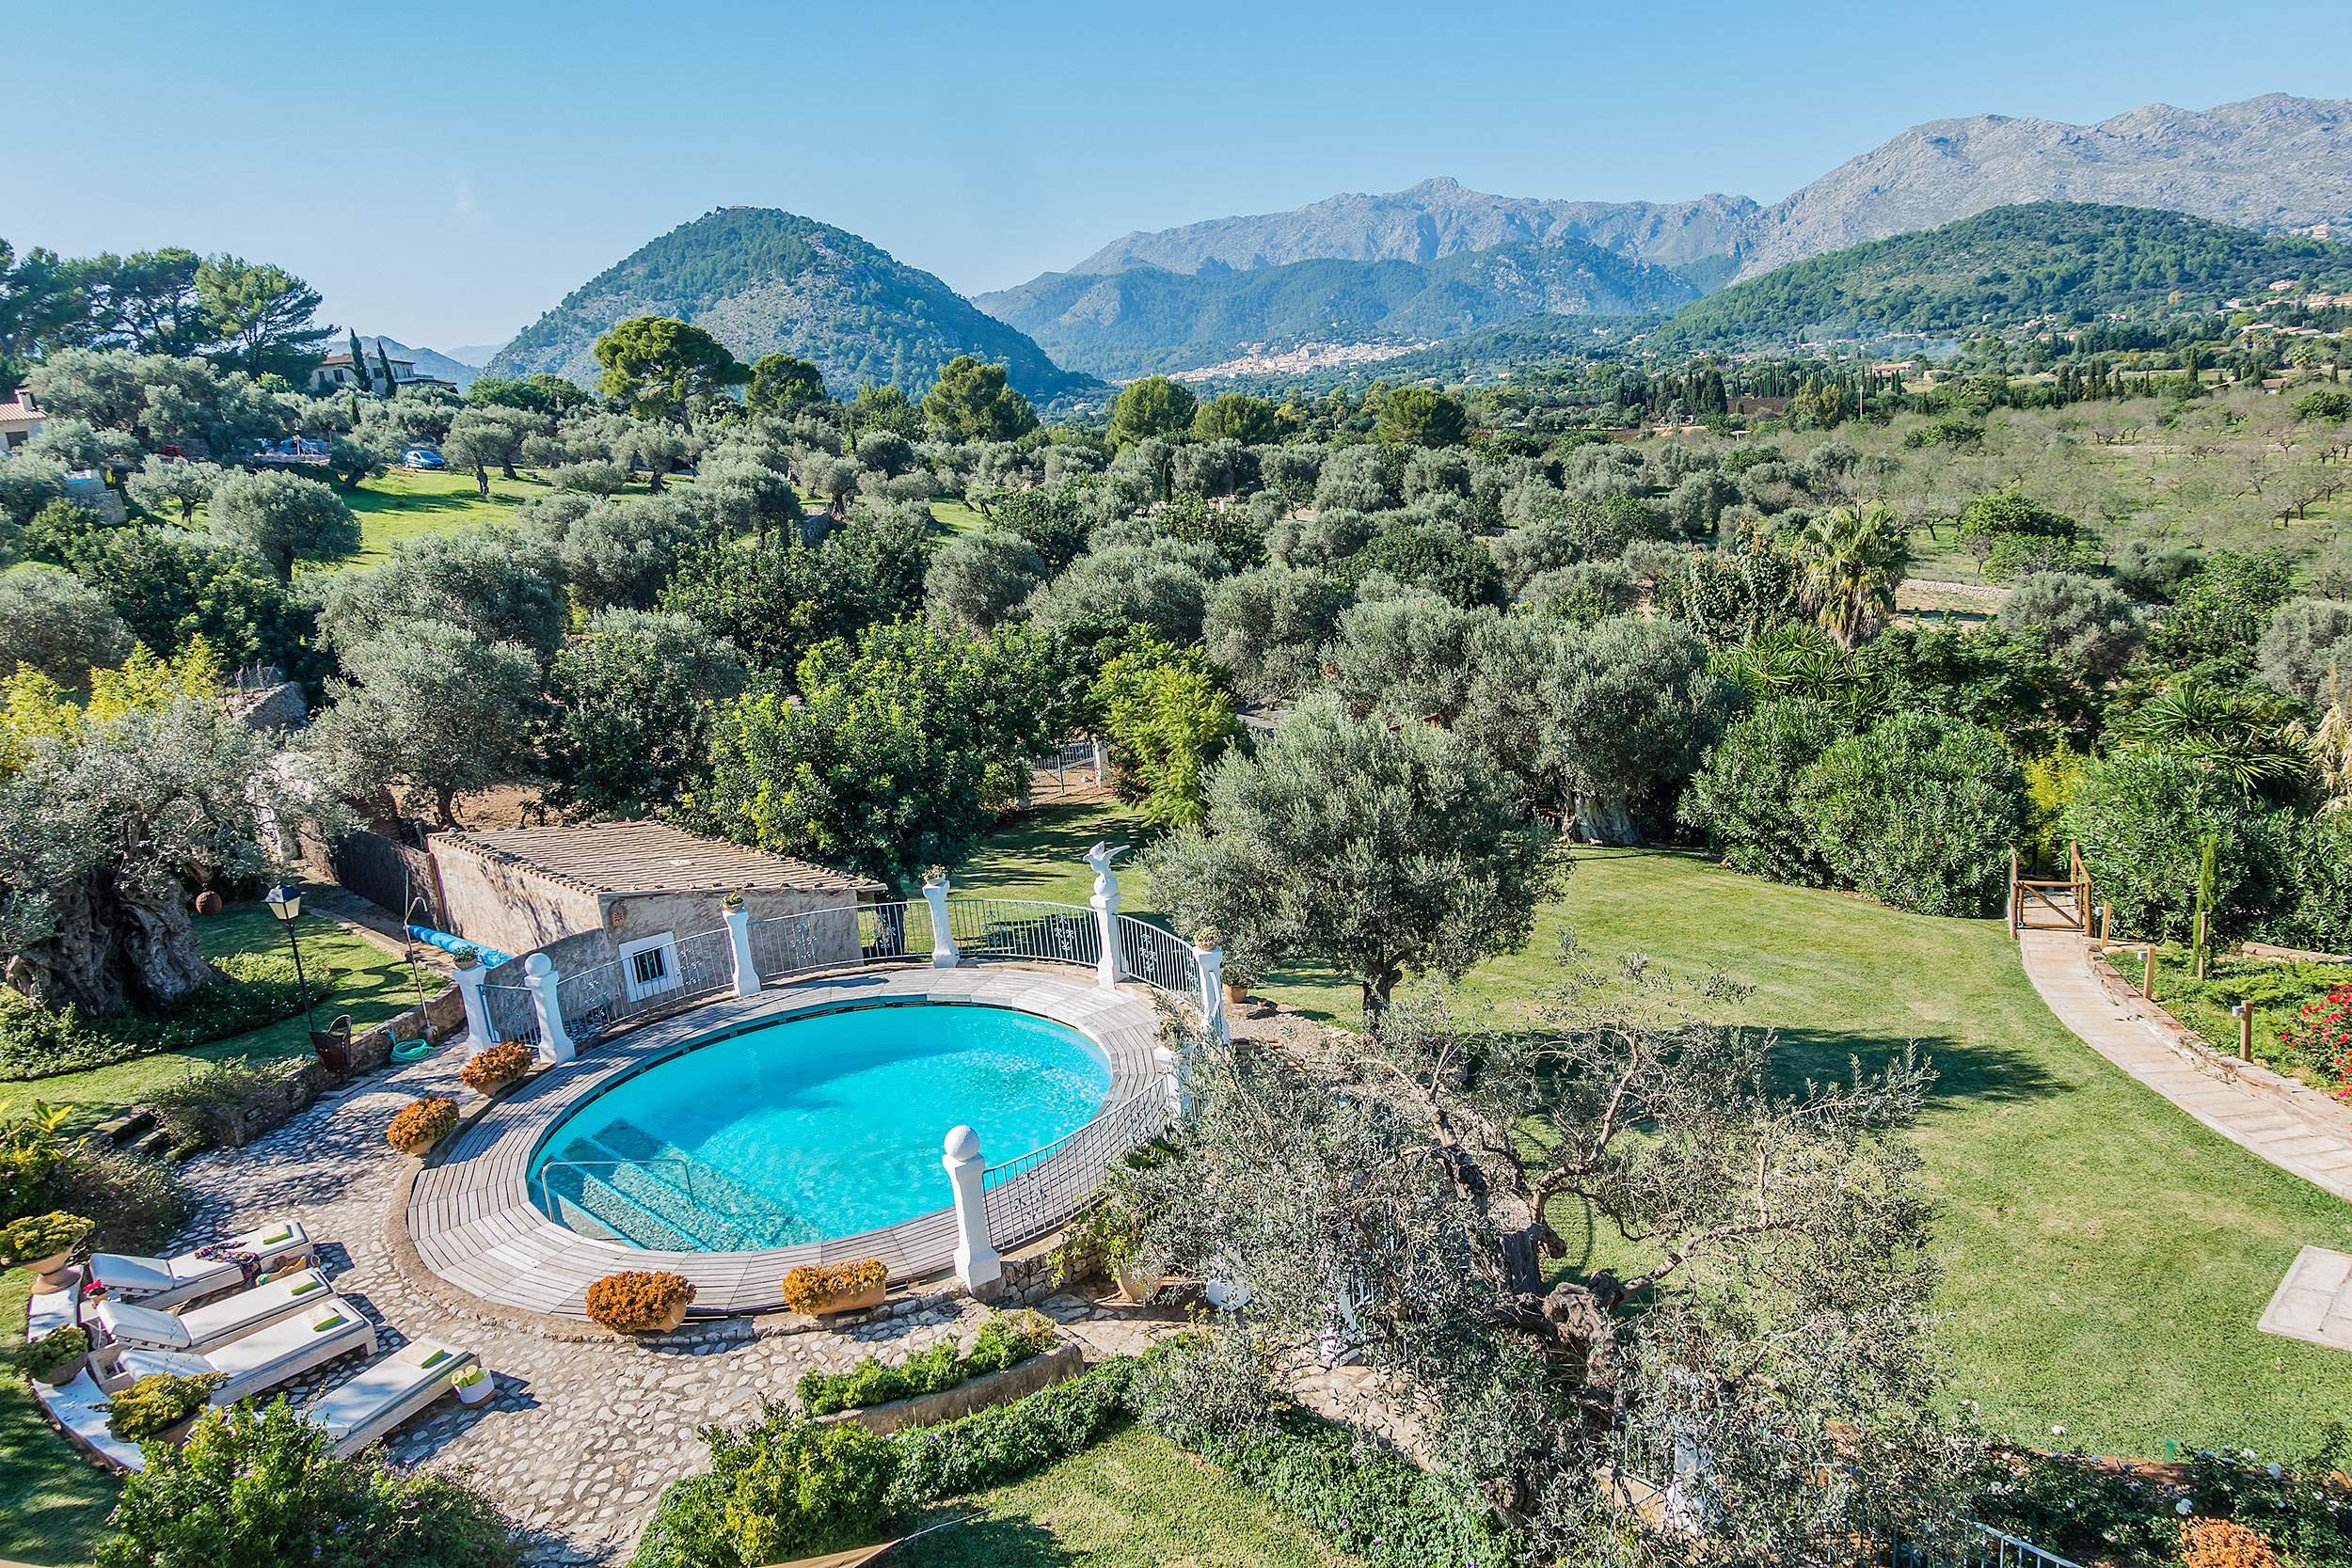 La Rota, 9 - 12 persons, 6 bedroom villa in Pollensa & Puerto Pollensa , Majorca Photo #12